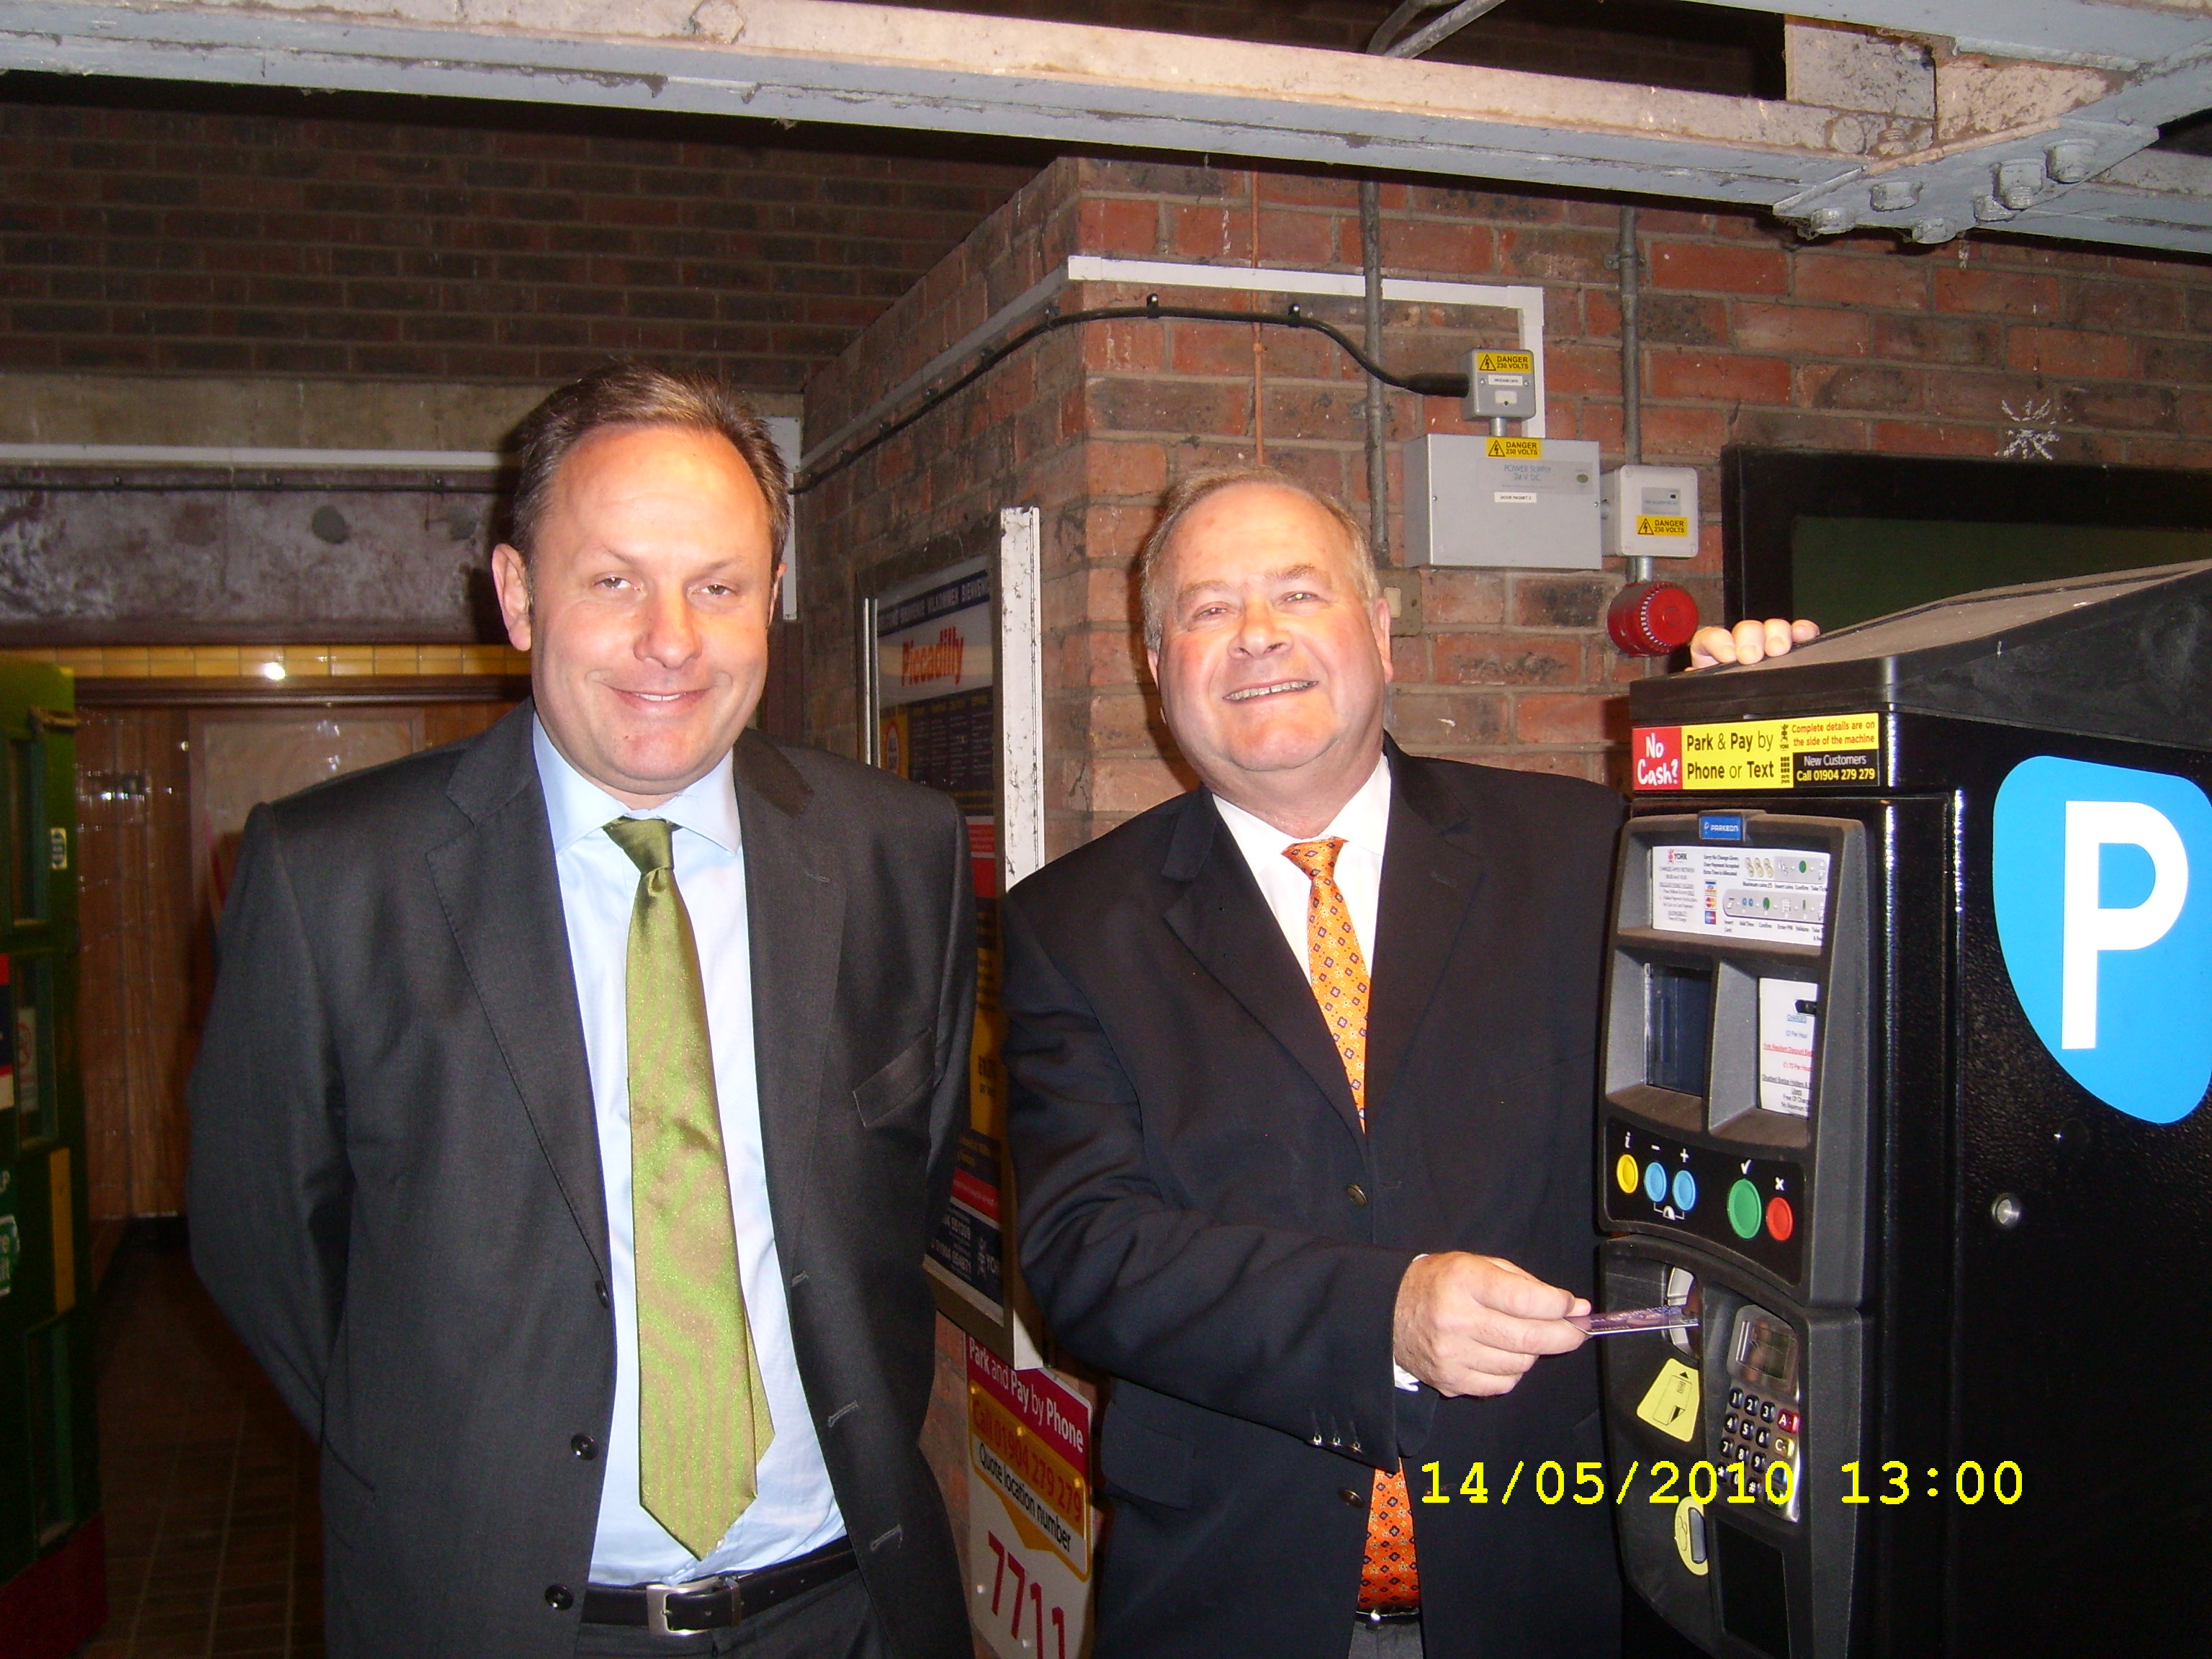 15th-may-10-adam-sinclair-and-steve-galloway-launch-card-parking-payments.JPG